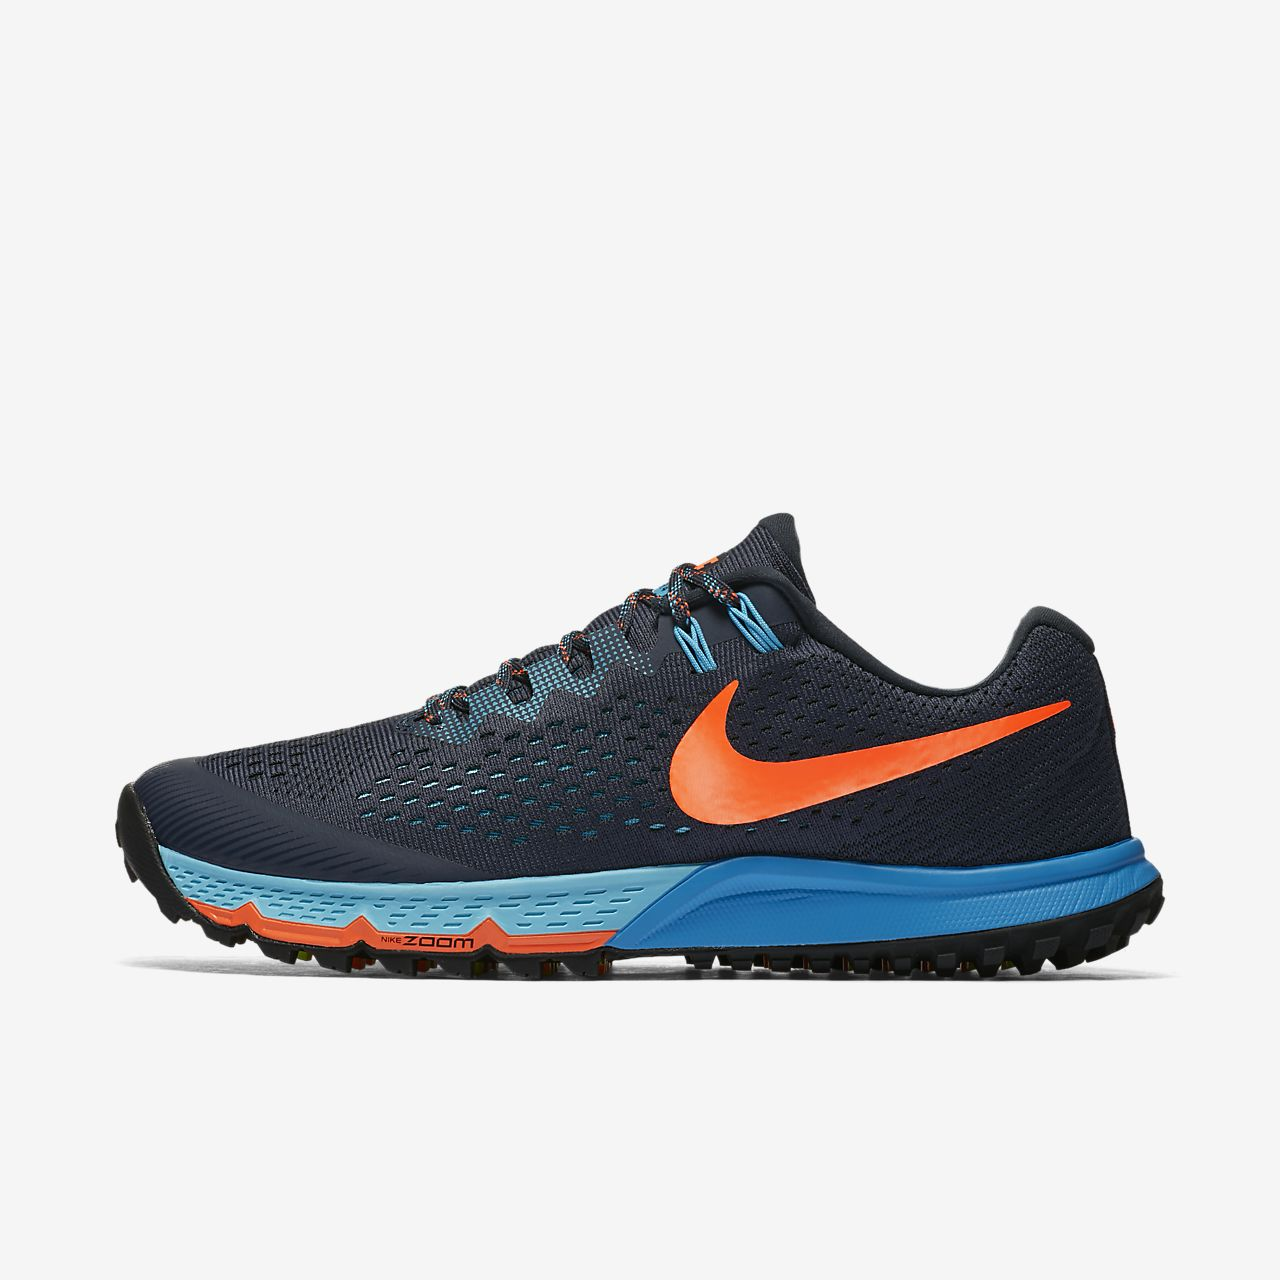 Nike Zoom Flywire Running Shoes